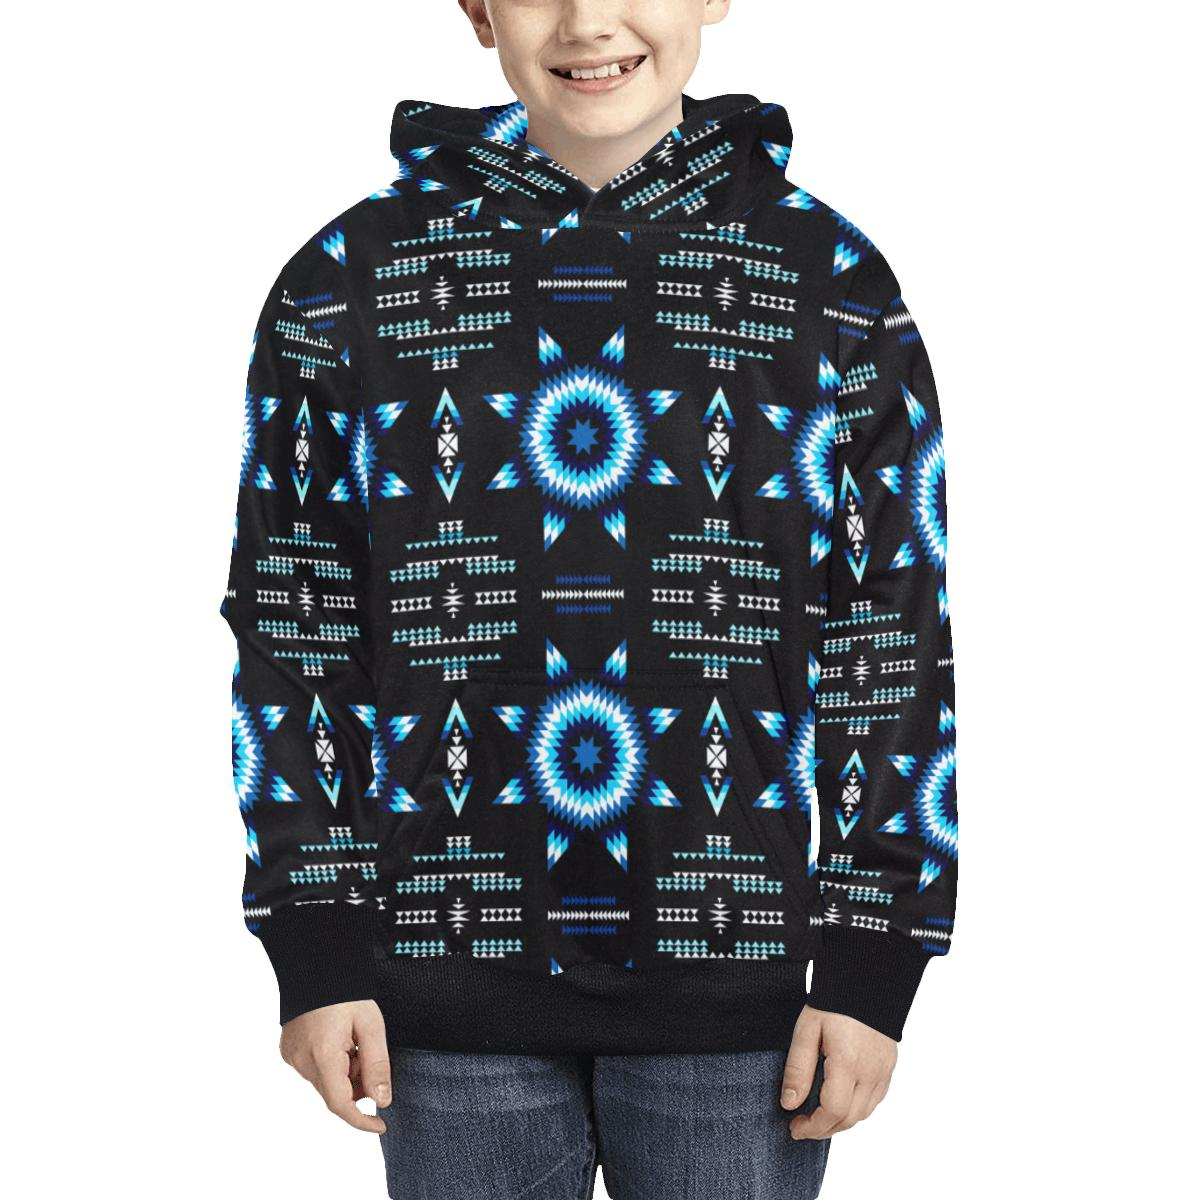 Rising Star Wolf Moon Kids' All Over Print Hoodie (Model H38) Kids' AOP Hoodie (H38) e-joyer